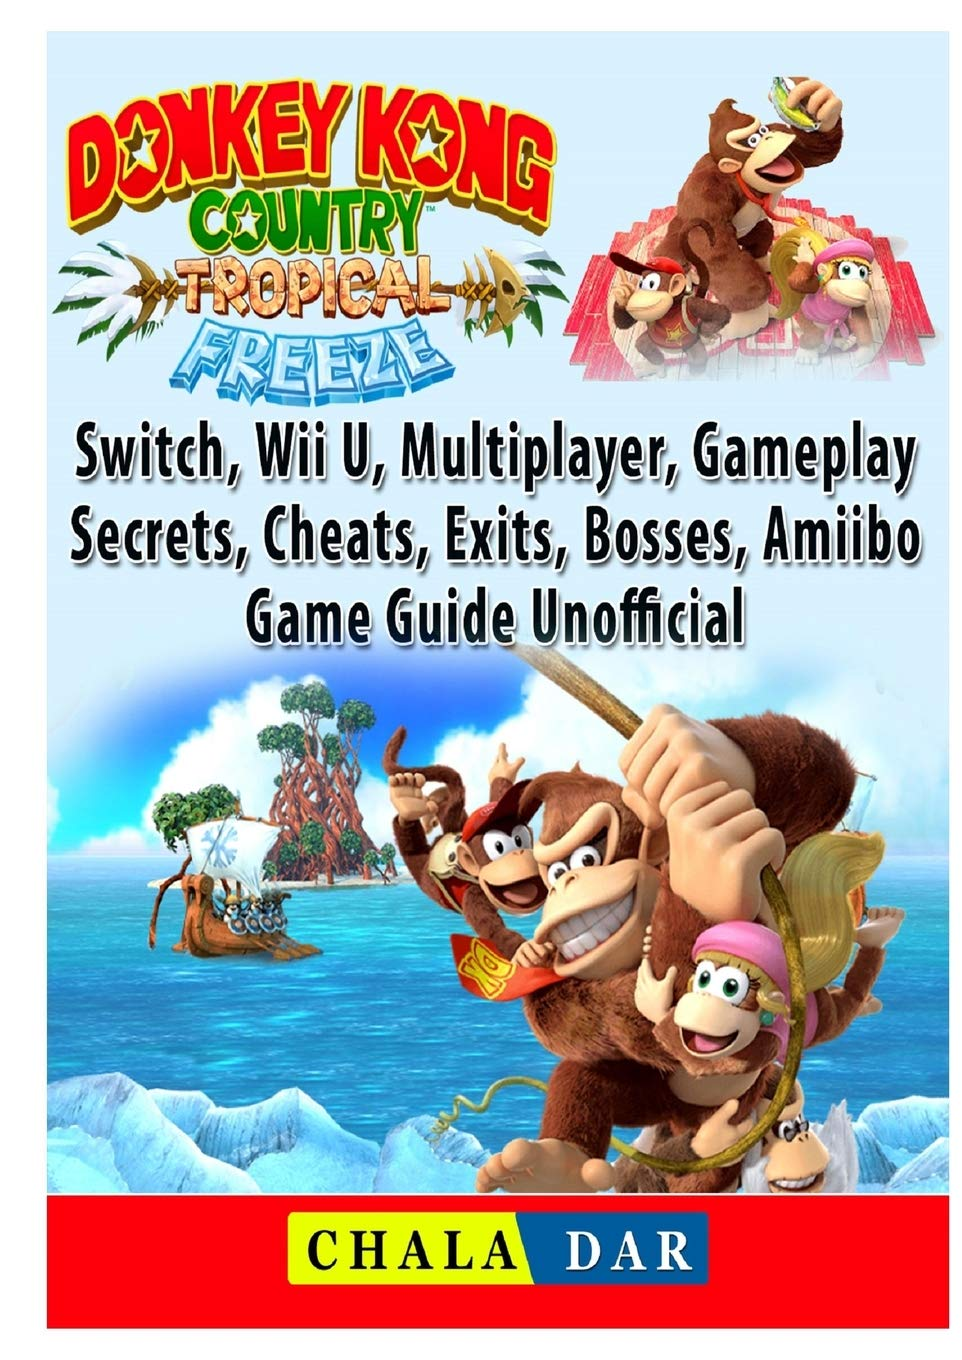 Donkey Kong Country Tropical Freeze, Switch, Wii U, Multiplayer, Gameplay, Secrets, Cheats, Exits, Bosses, Amiibo, Game Guide Unofficial: Amazon.es: Dar, Chala: Libros en idiomas extranjeros